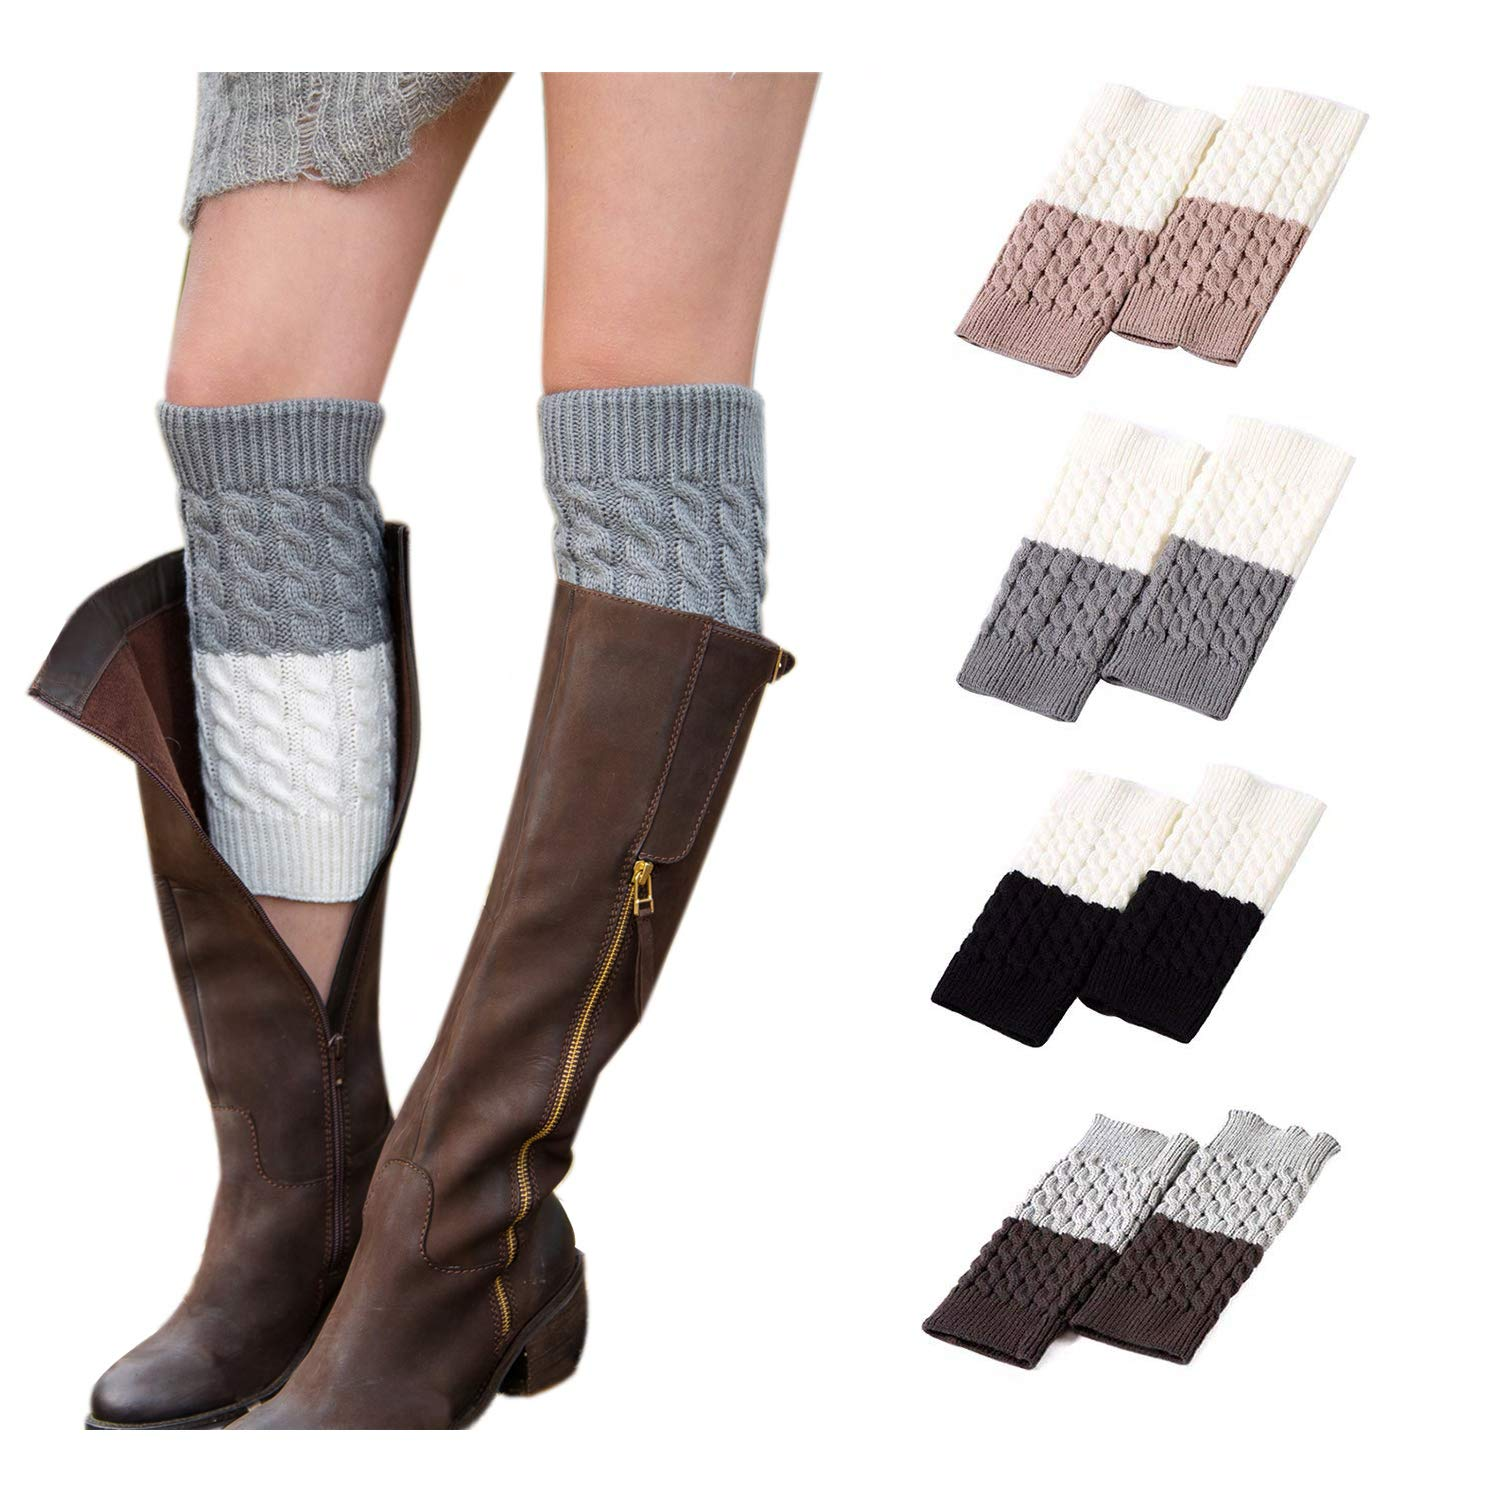 Kaariss Women Winter Warm Crochet Knitted Boot Cuff Sock Short Leg Warmers (4 Pairs-Style d) by Kaariss